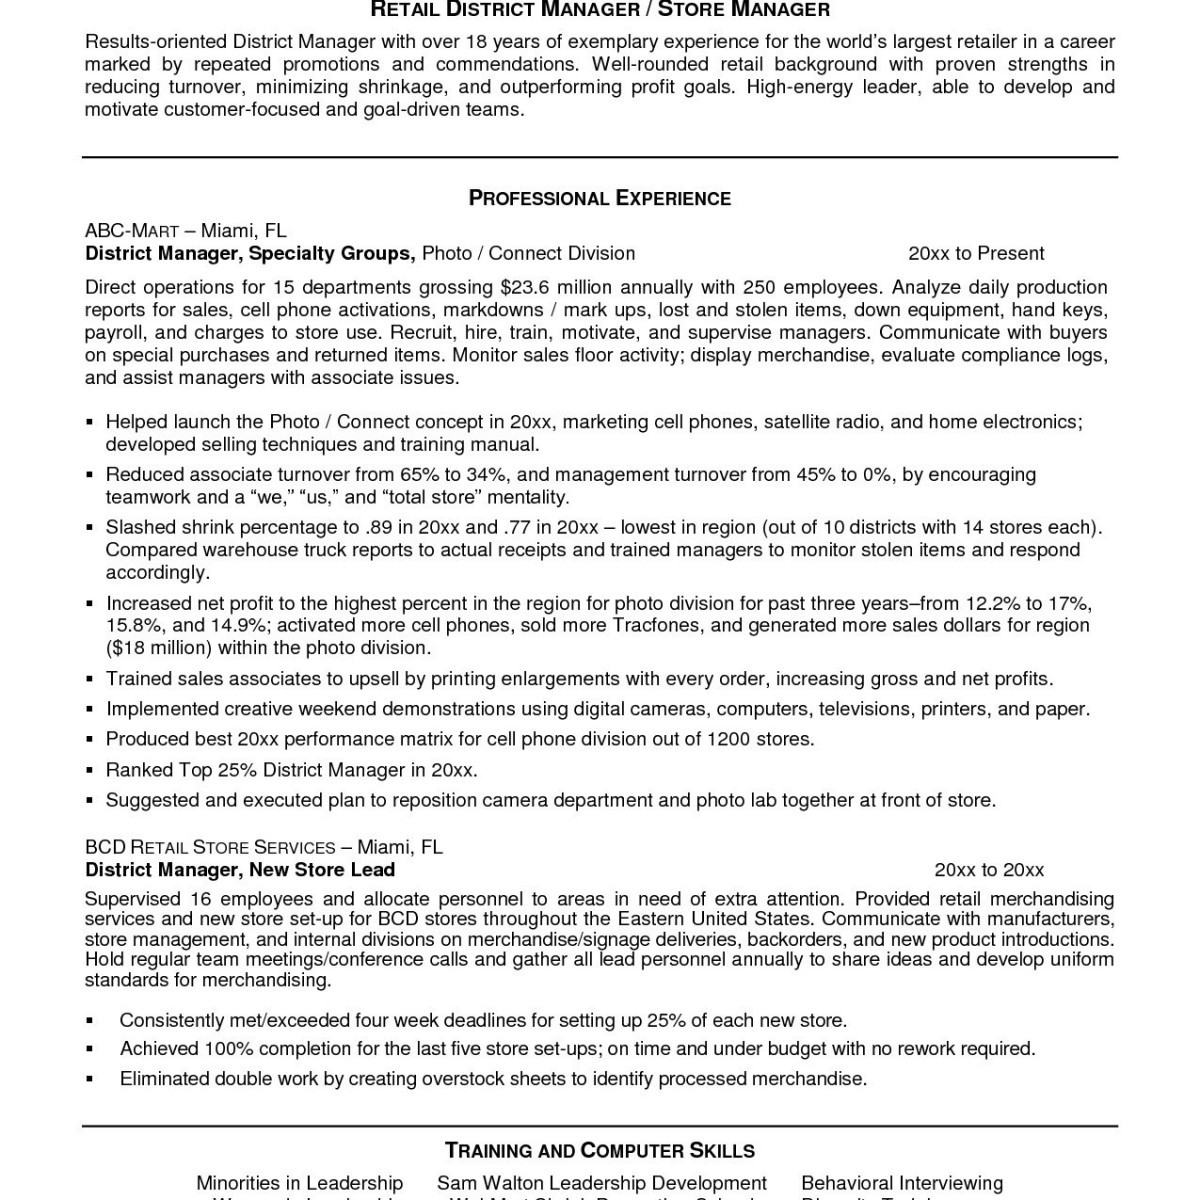 Resume Sample for College Student - College Student Resume Examples Lovely Chef Resume Samples Awesome